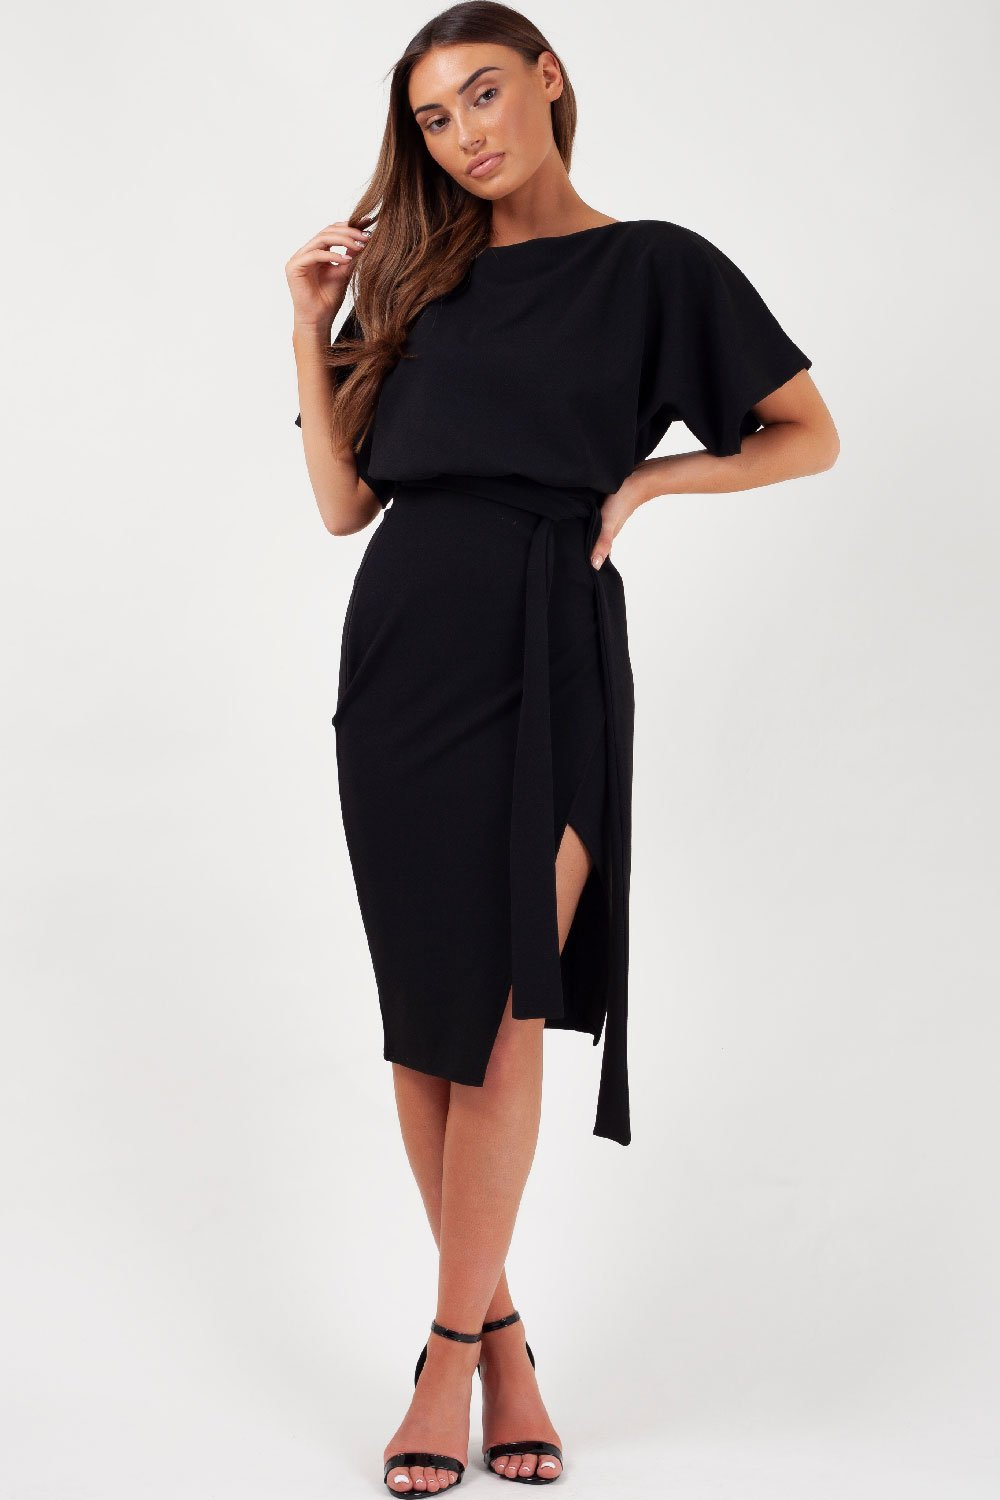 black midi wrap dress uk